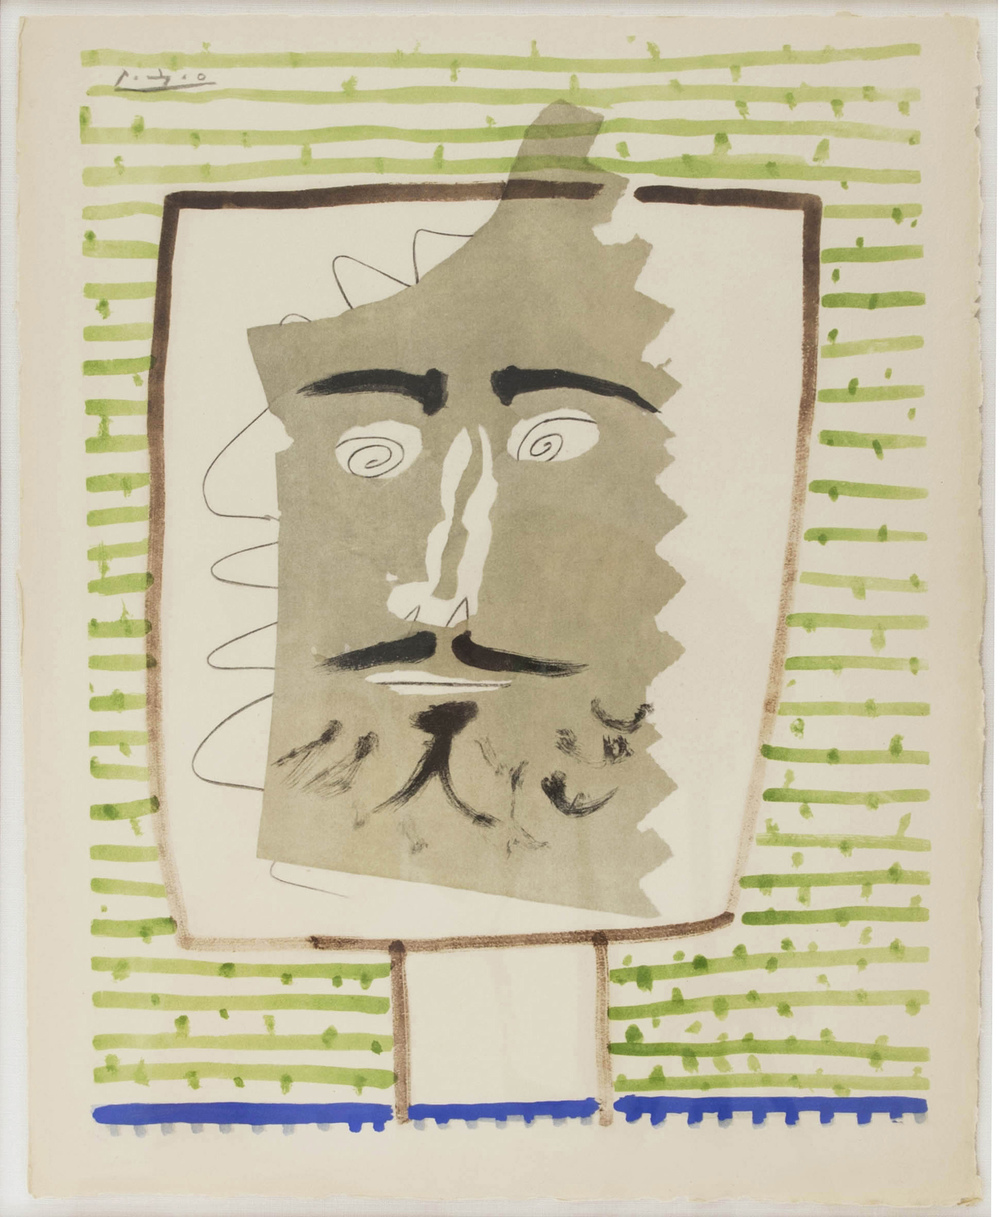 pablo-picasso-head-of-bearded-faune-1956-pochoir-jacomet-unframed.jpg